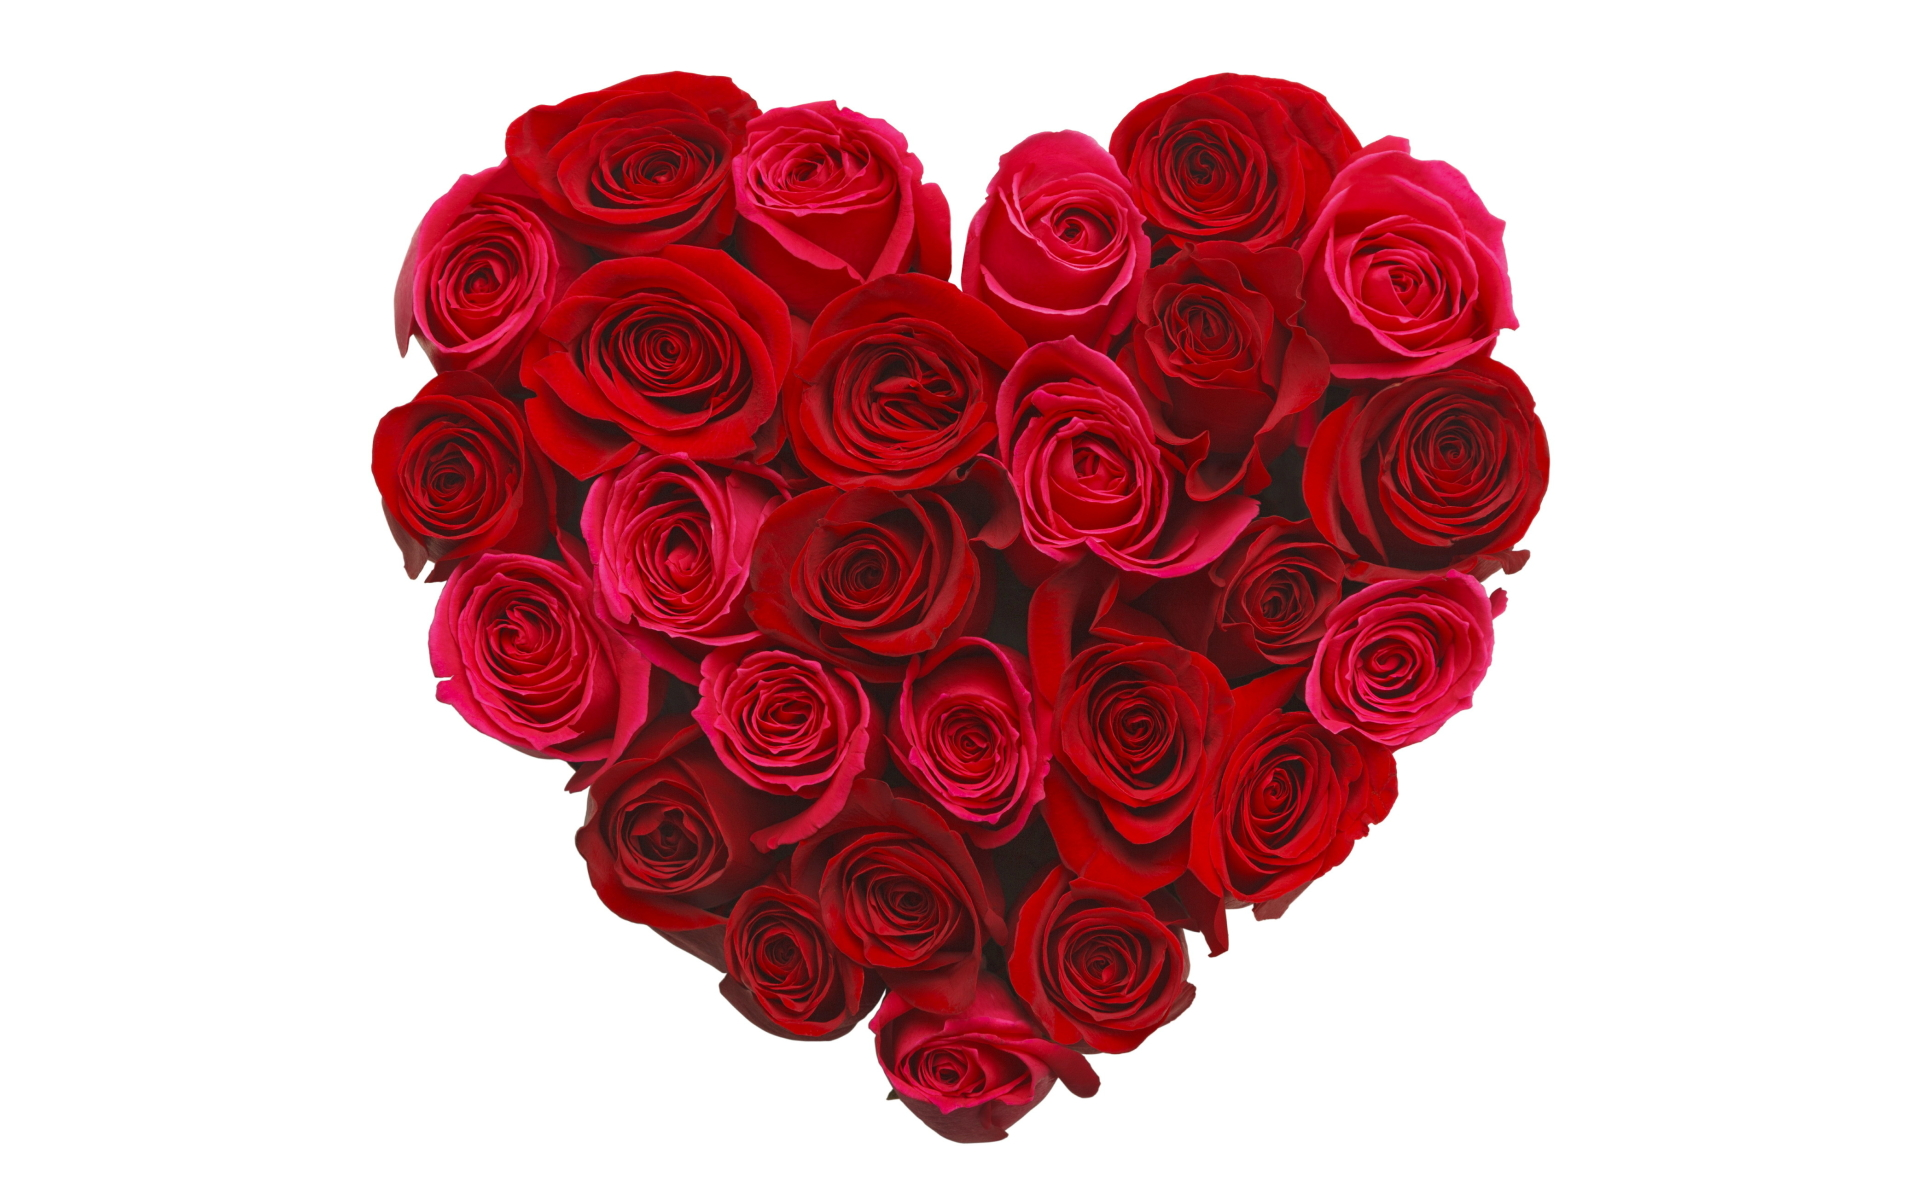 heart and roses background - photo #16